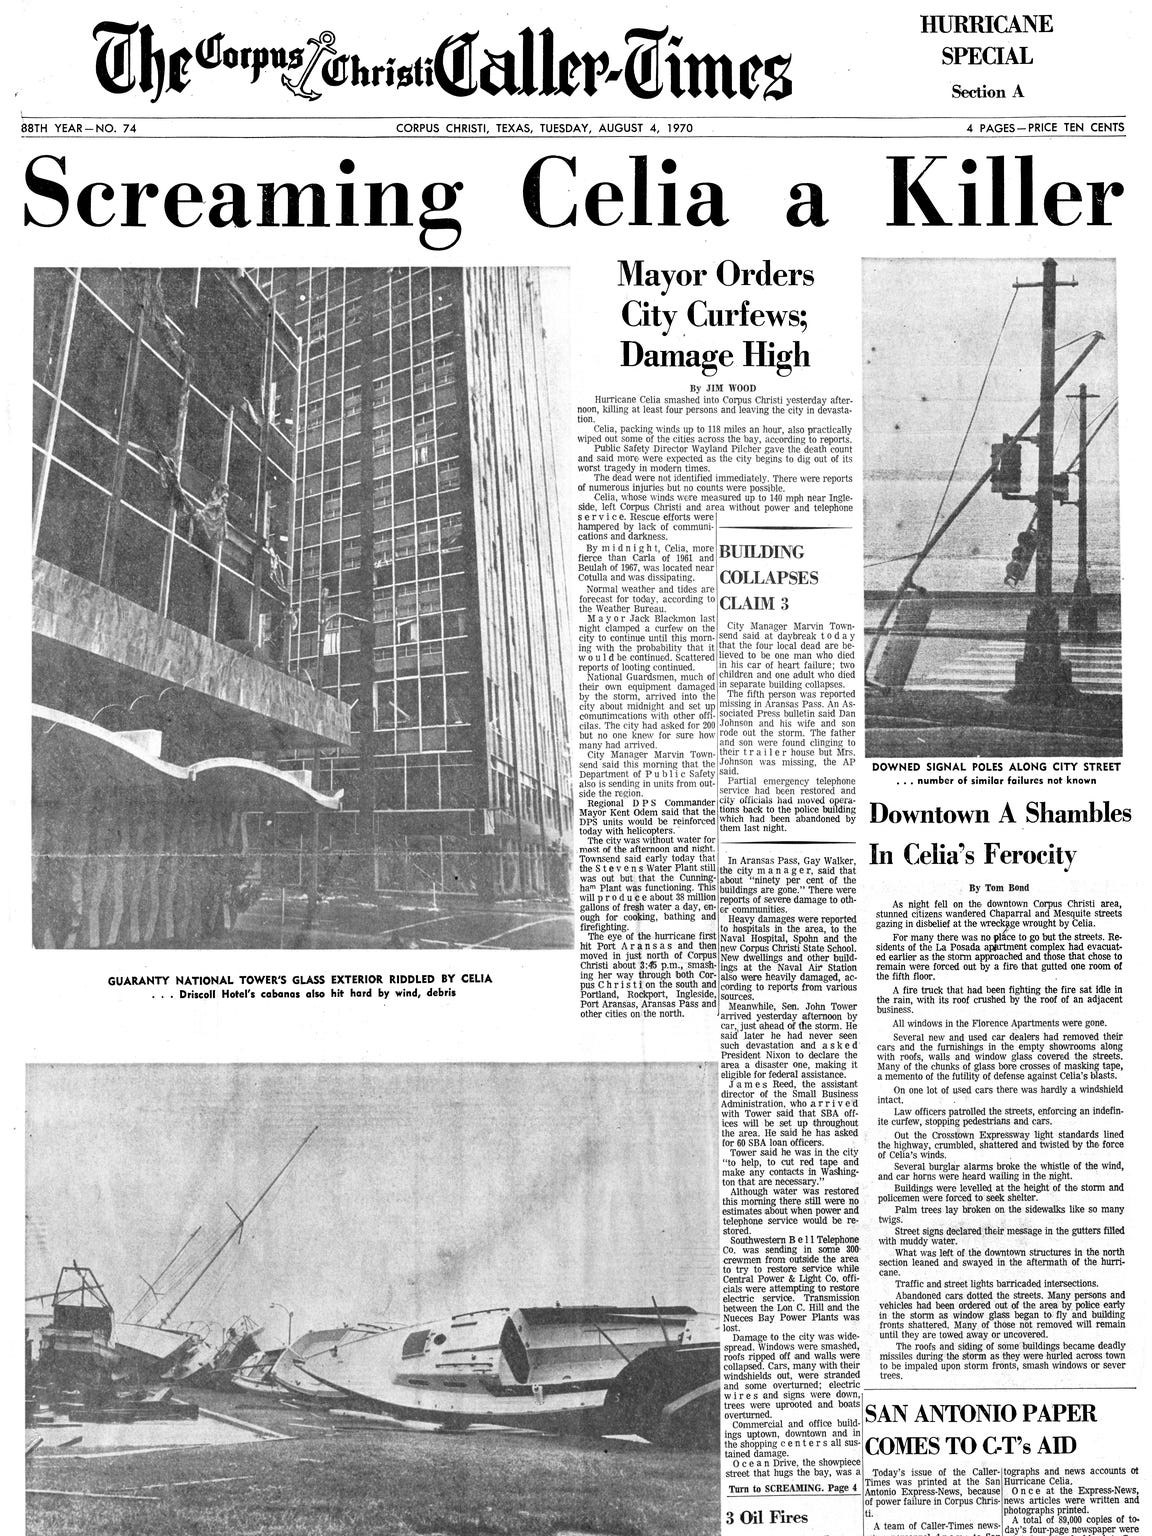 The front page of the Caller-Times carried news of Hurricane Celia after the storm made landfall in Corpus Christi on Aug. 3, 1970.